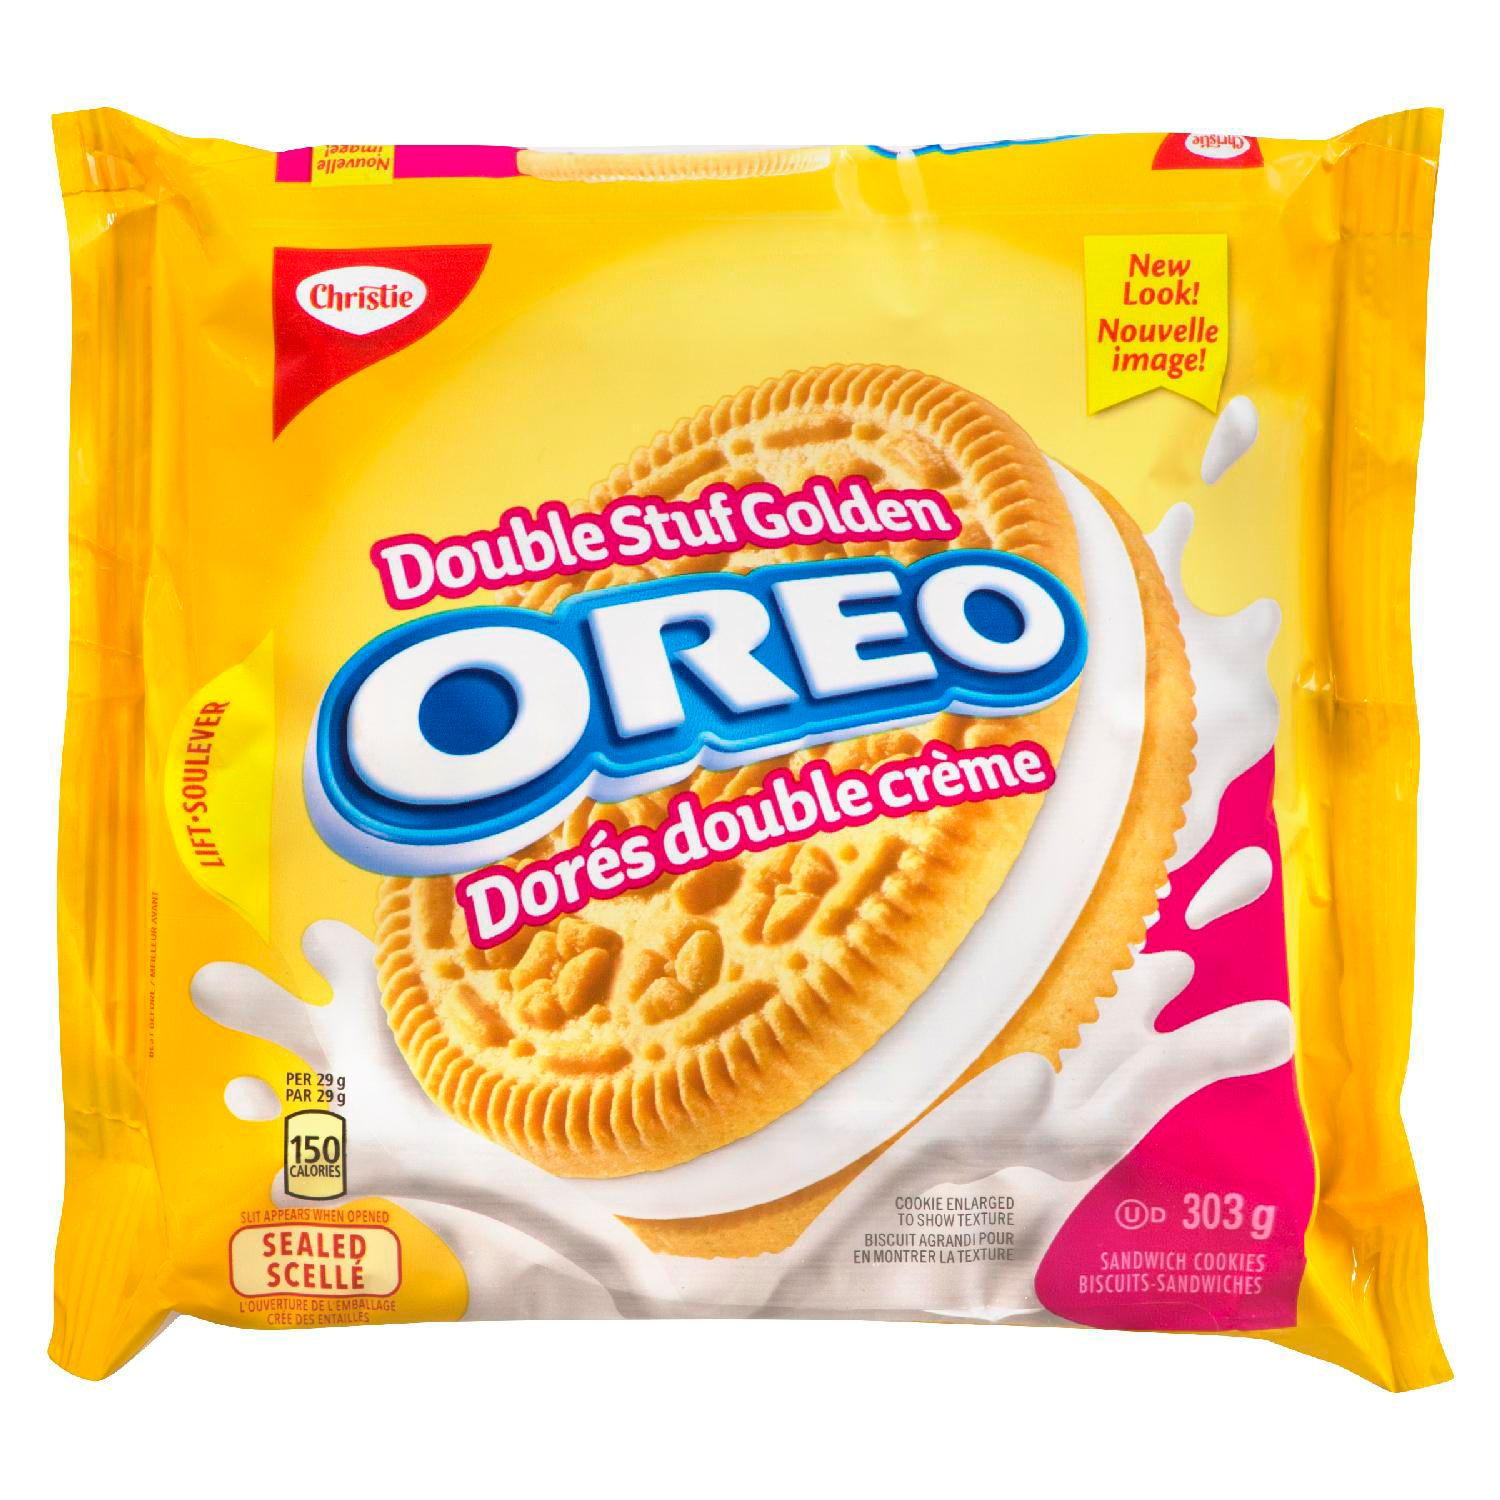 Oreo Double Stuf Golden Cookies 303 G